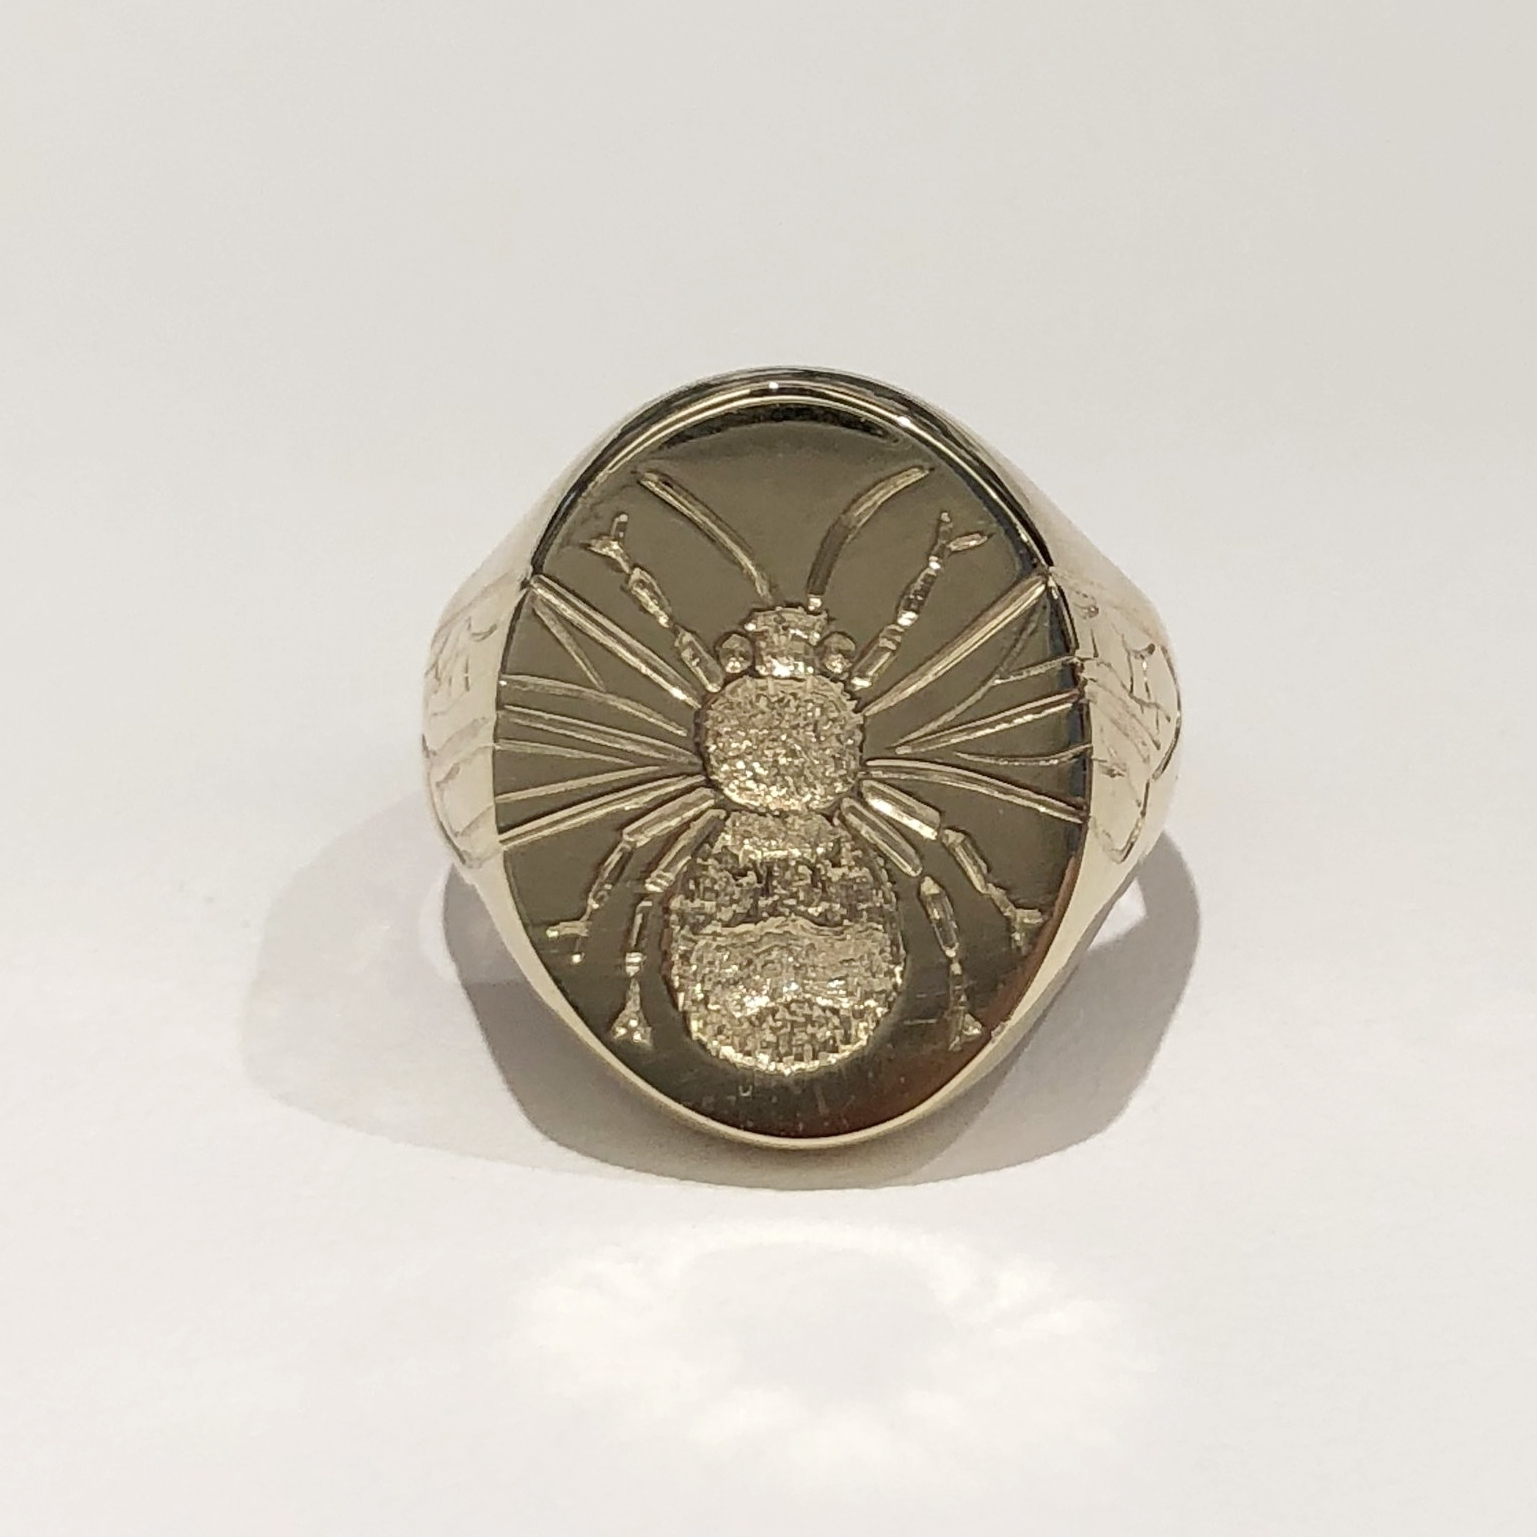 Finished ring with new engraving of a bee.